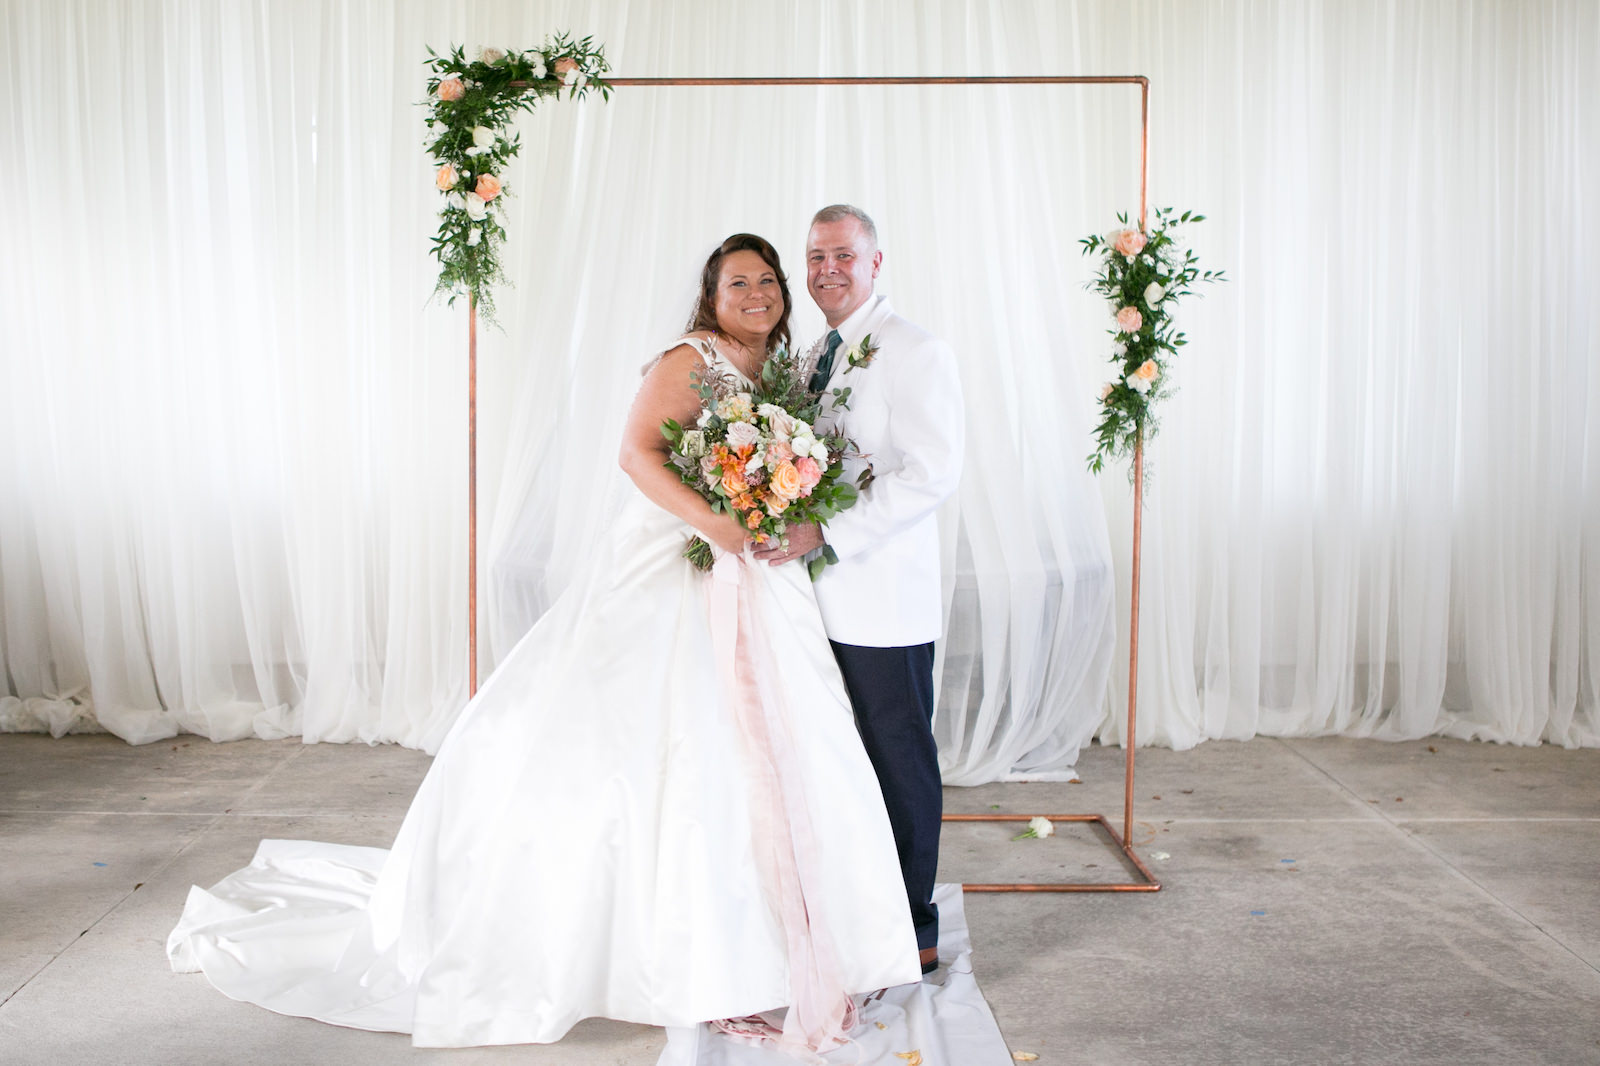 Tampa Bride Holding Spring Color Floral Bouquet with Blush Pink Ribbon and Groom Wedding Portrait Under Copper Arch | Wedding Photographer Carrie Wildes Photography | Wedding Hair and Makeup Michele Renee the Studio | Wedding Dress Truly Forever Bridal